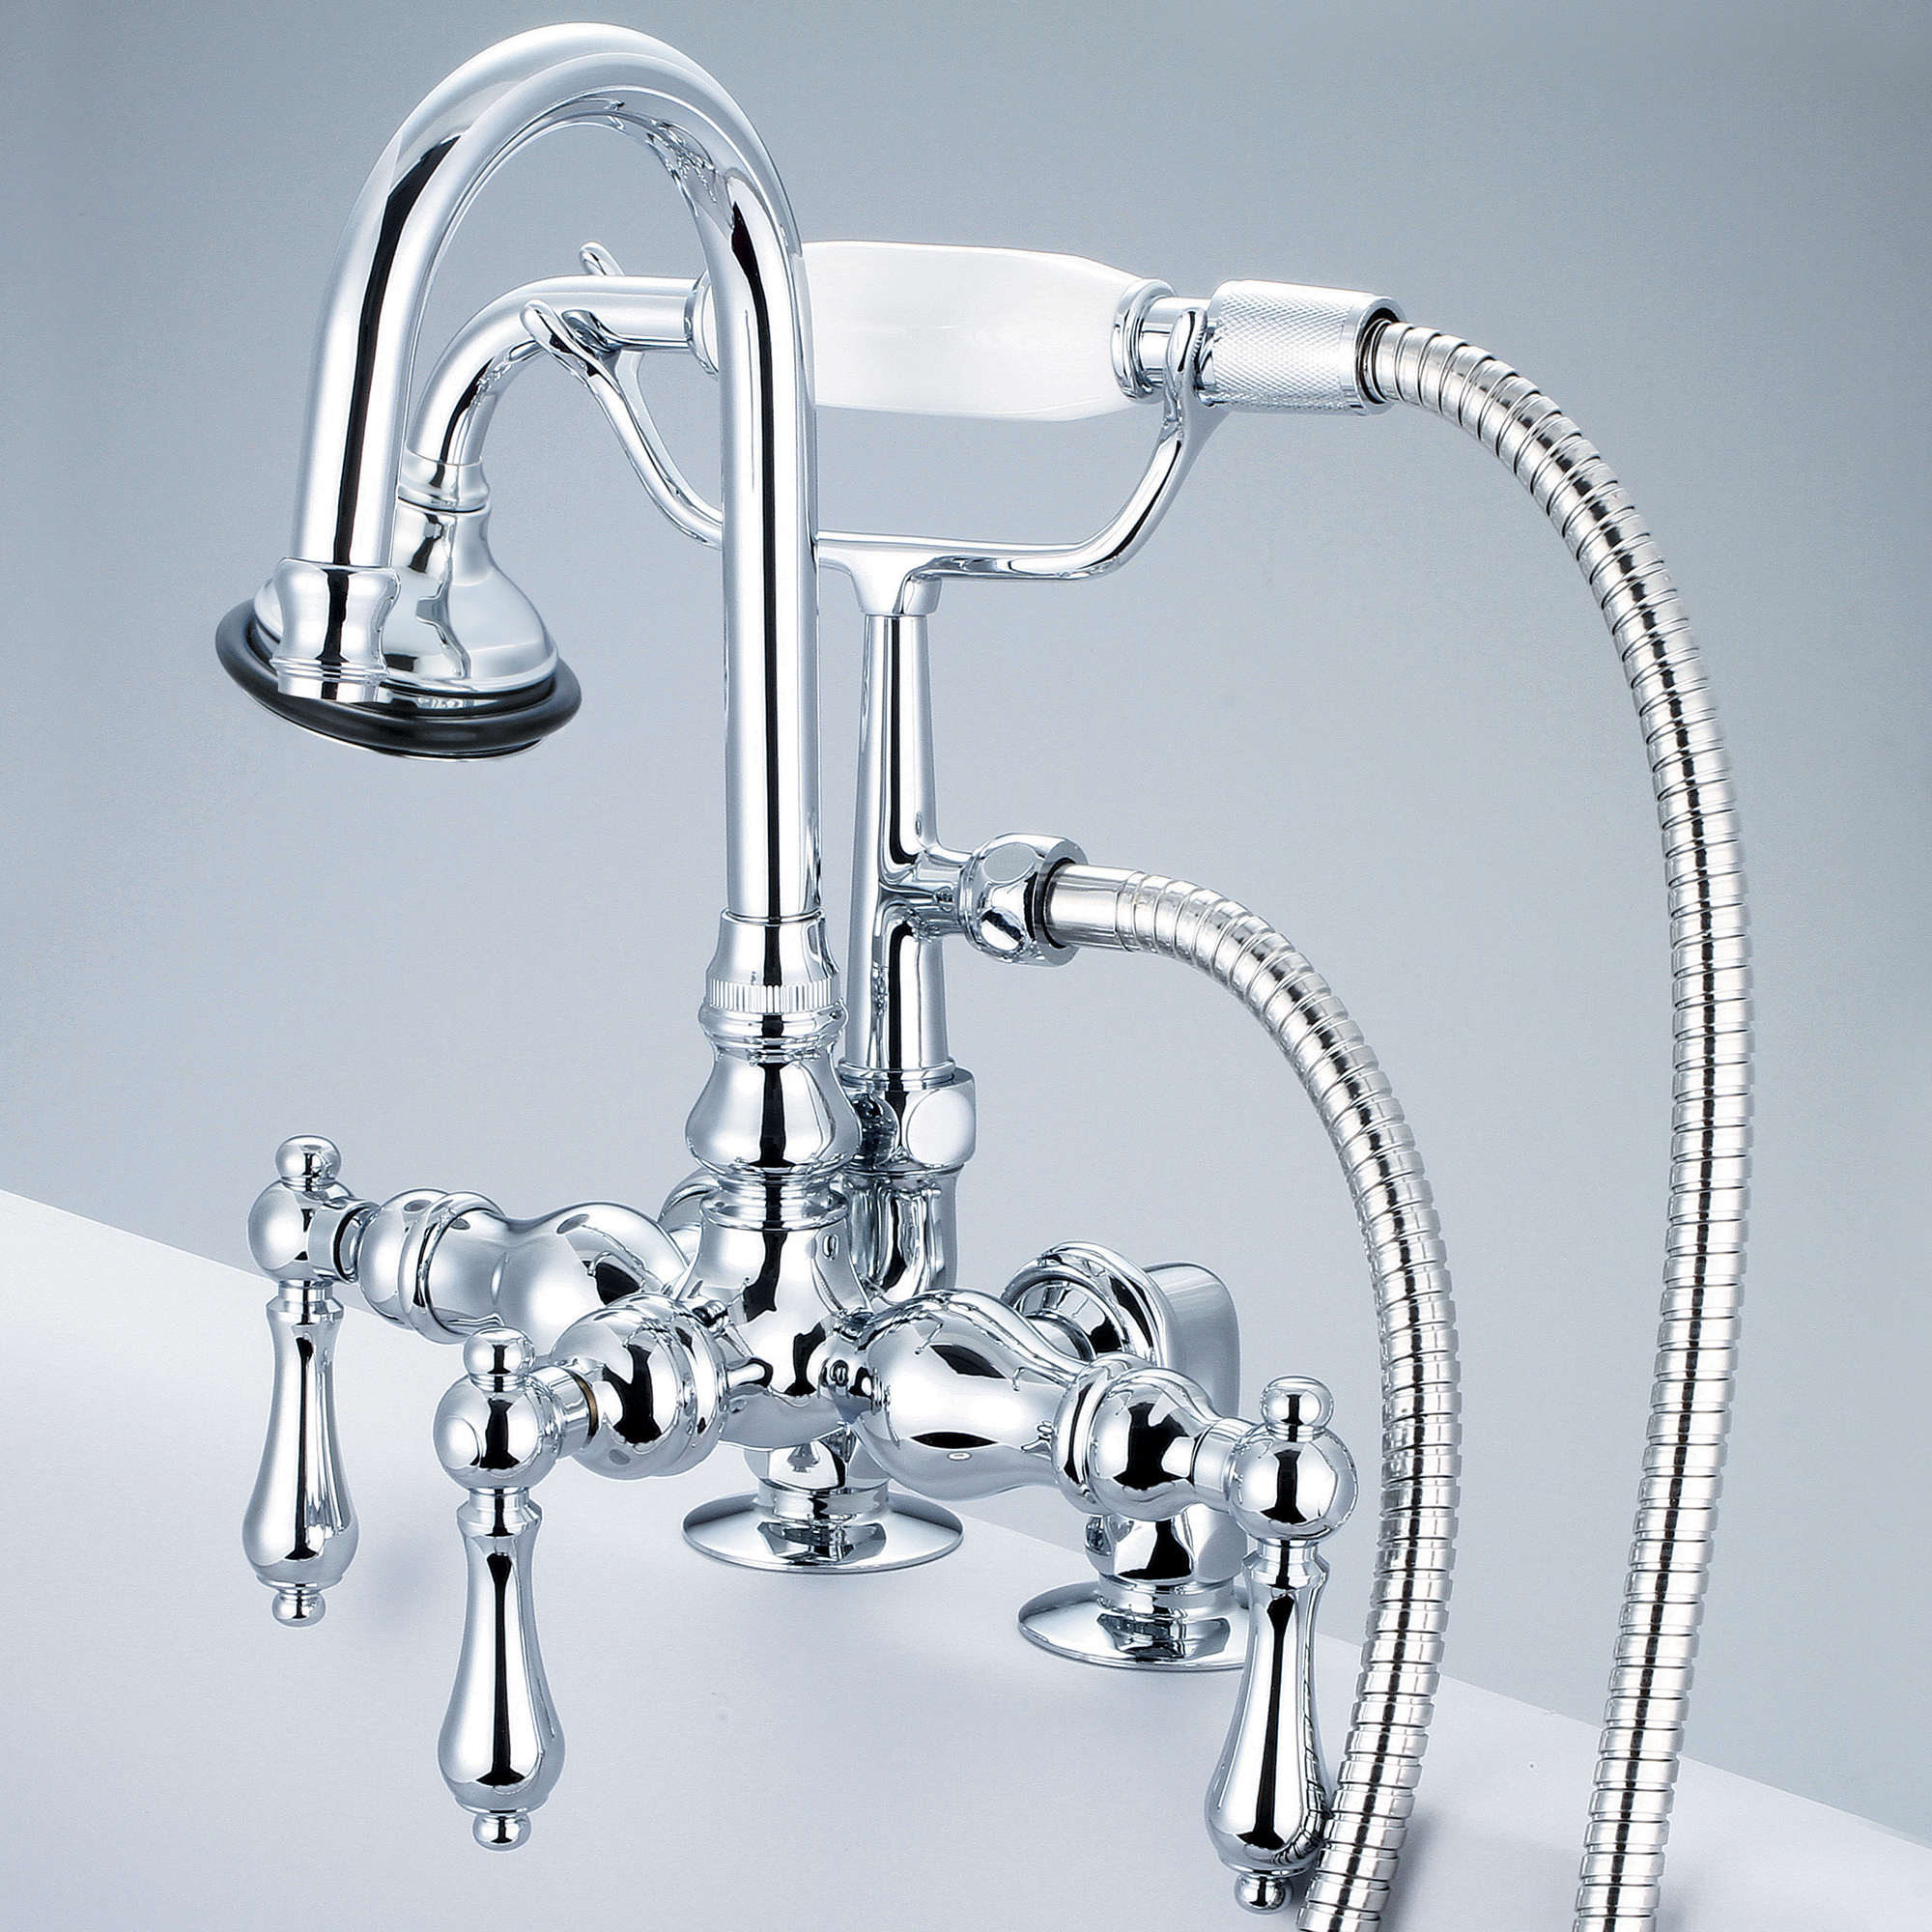 Vintage Classic 3.375 Inch Center Deck Mount Tub Faucet With Gooseneck Spout, 2 Inch Risers & Handheld Shower in Chrome Finish With Metal Lever Handles Without Labels